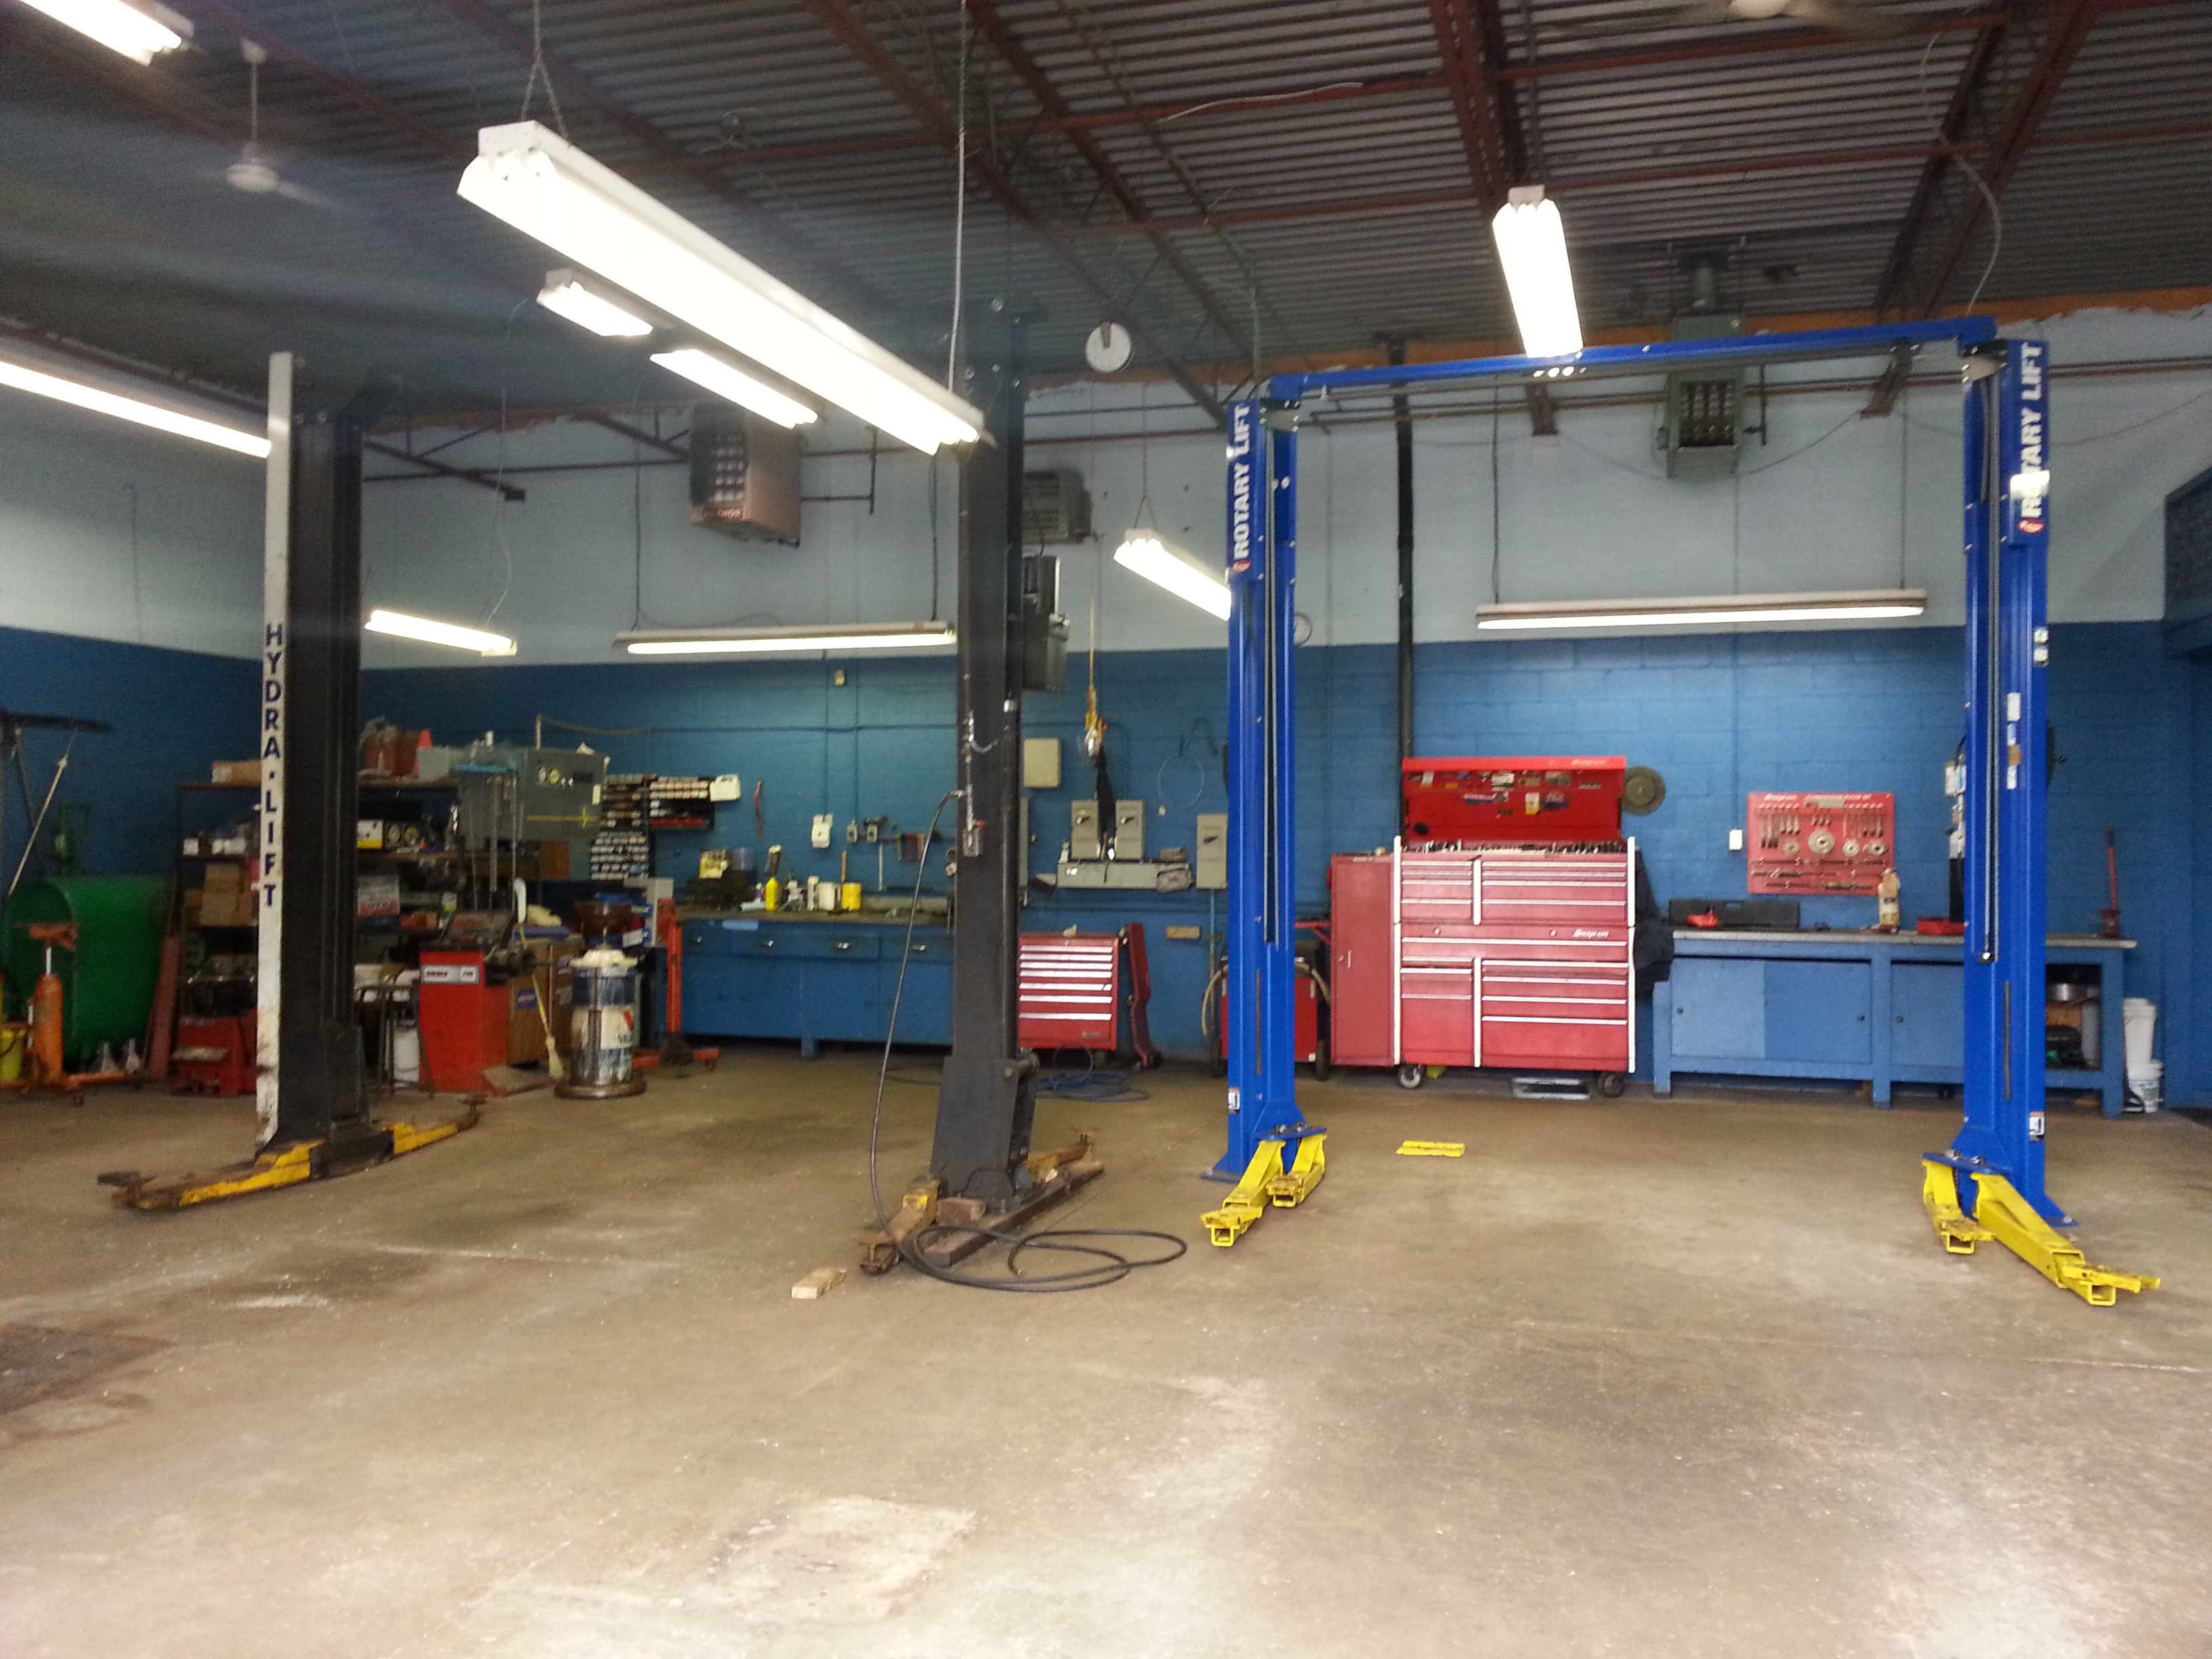 Inside the Dave's Auto Service shop